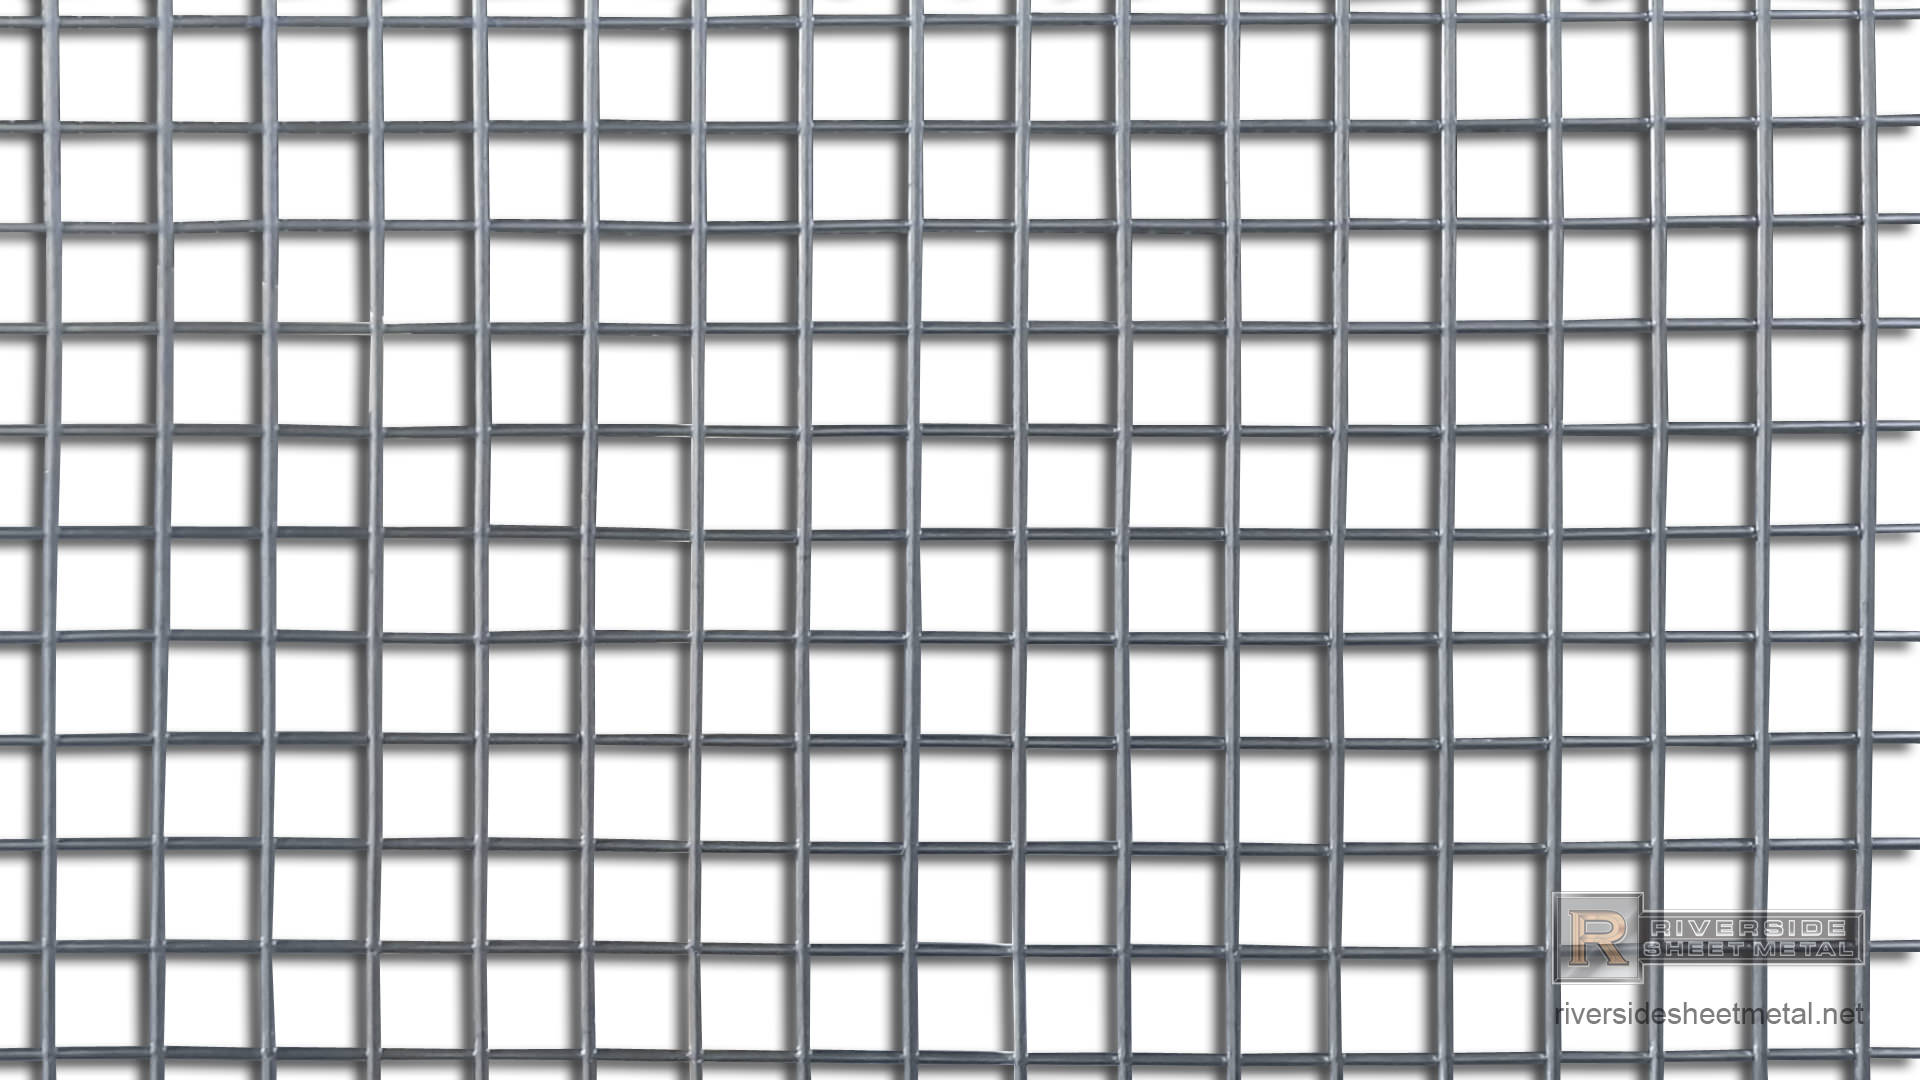 Stainless steel mesh 18 x 18 and 05 x 05 stainless steel mesh 12 nvjuhfo Choice Image